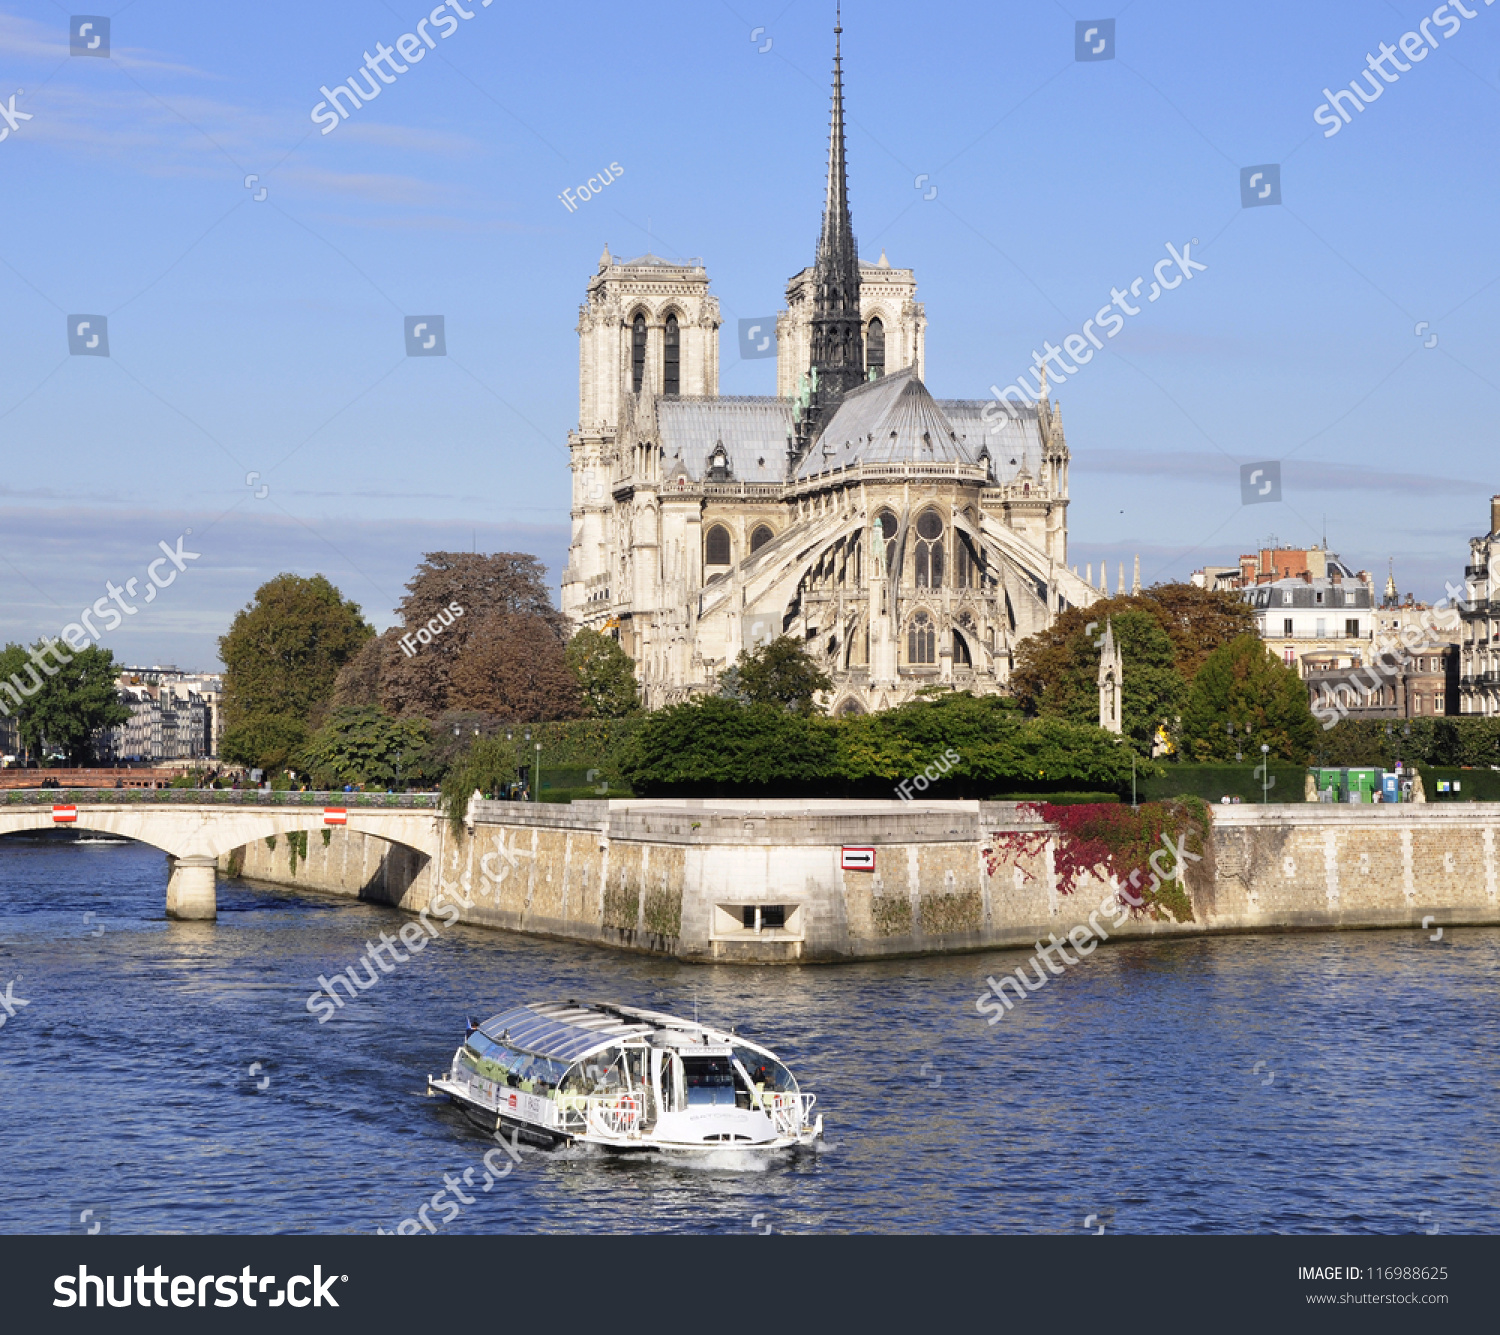 River boat on the river Seine passing in front of Notre-Dame in Paris